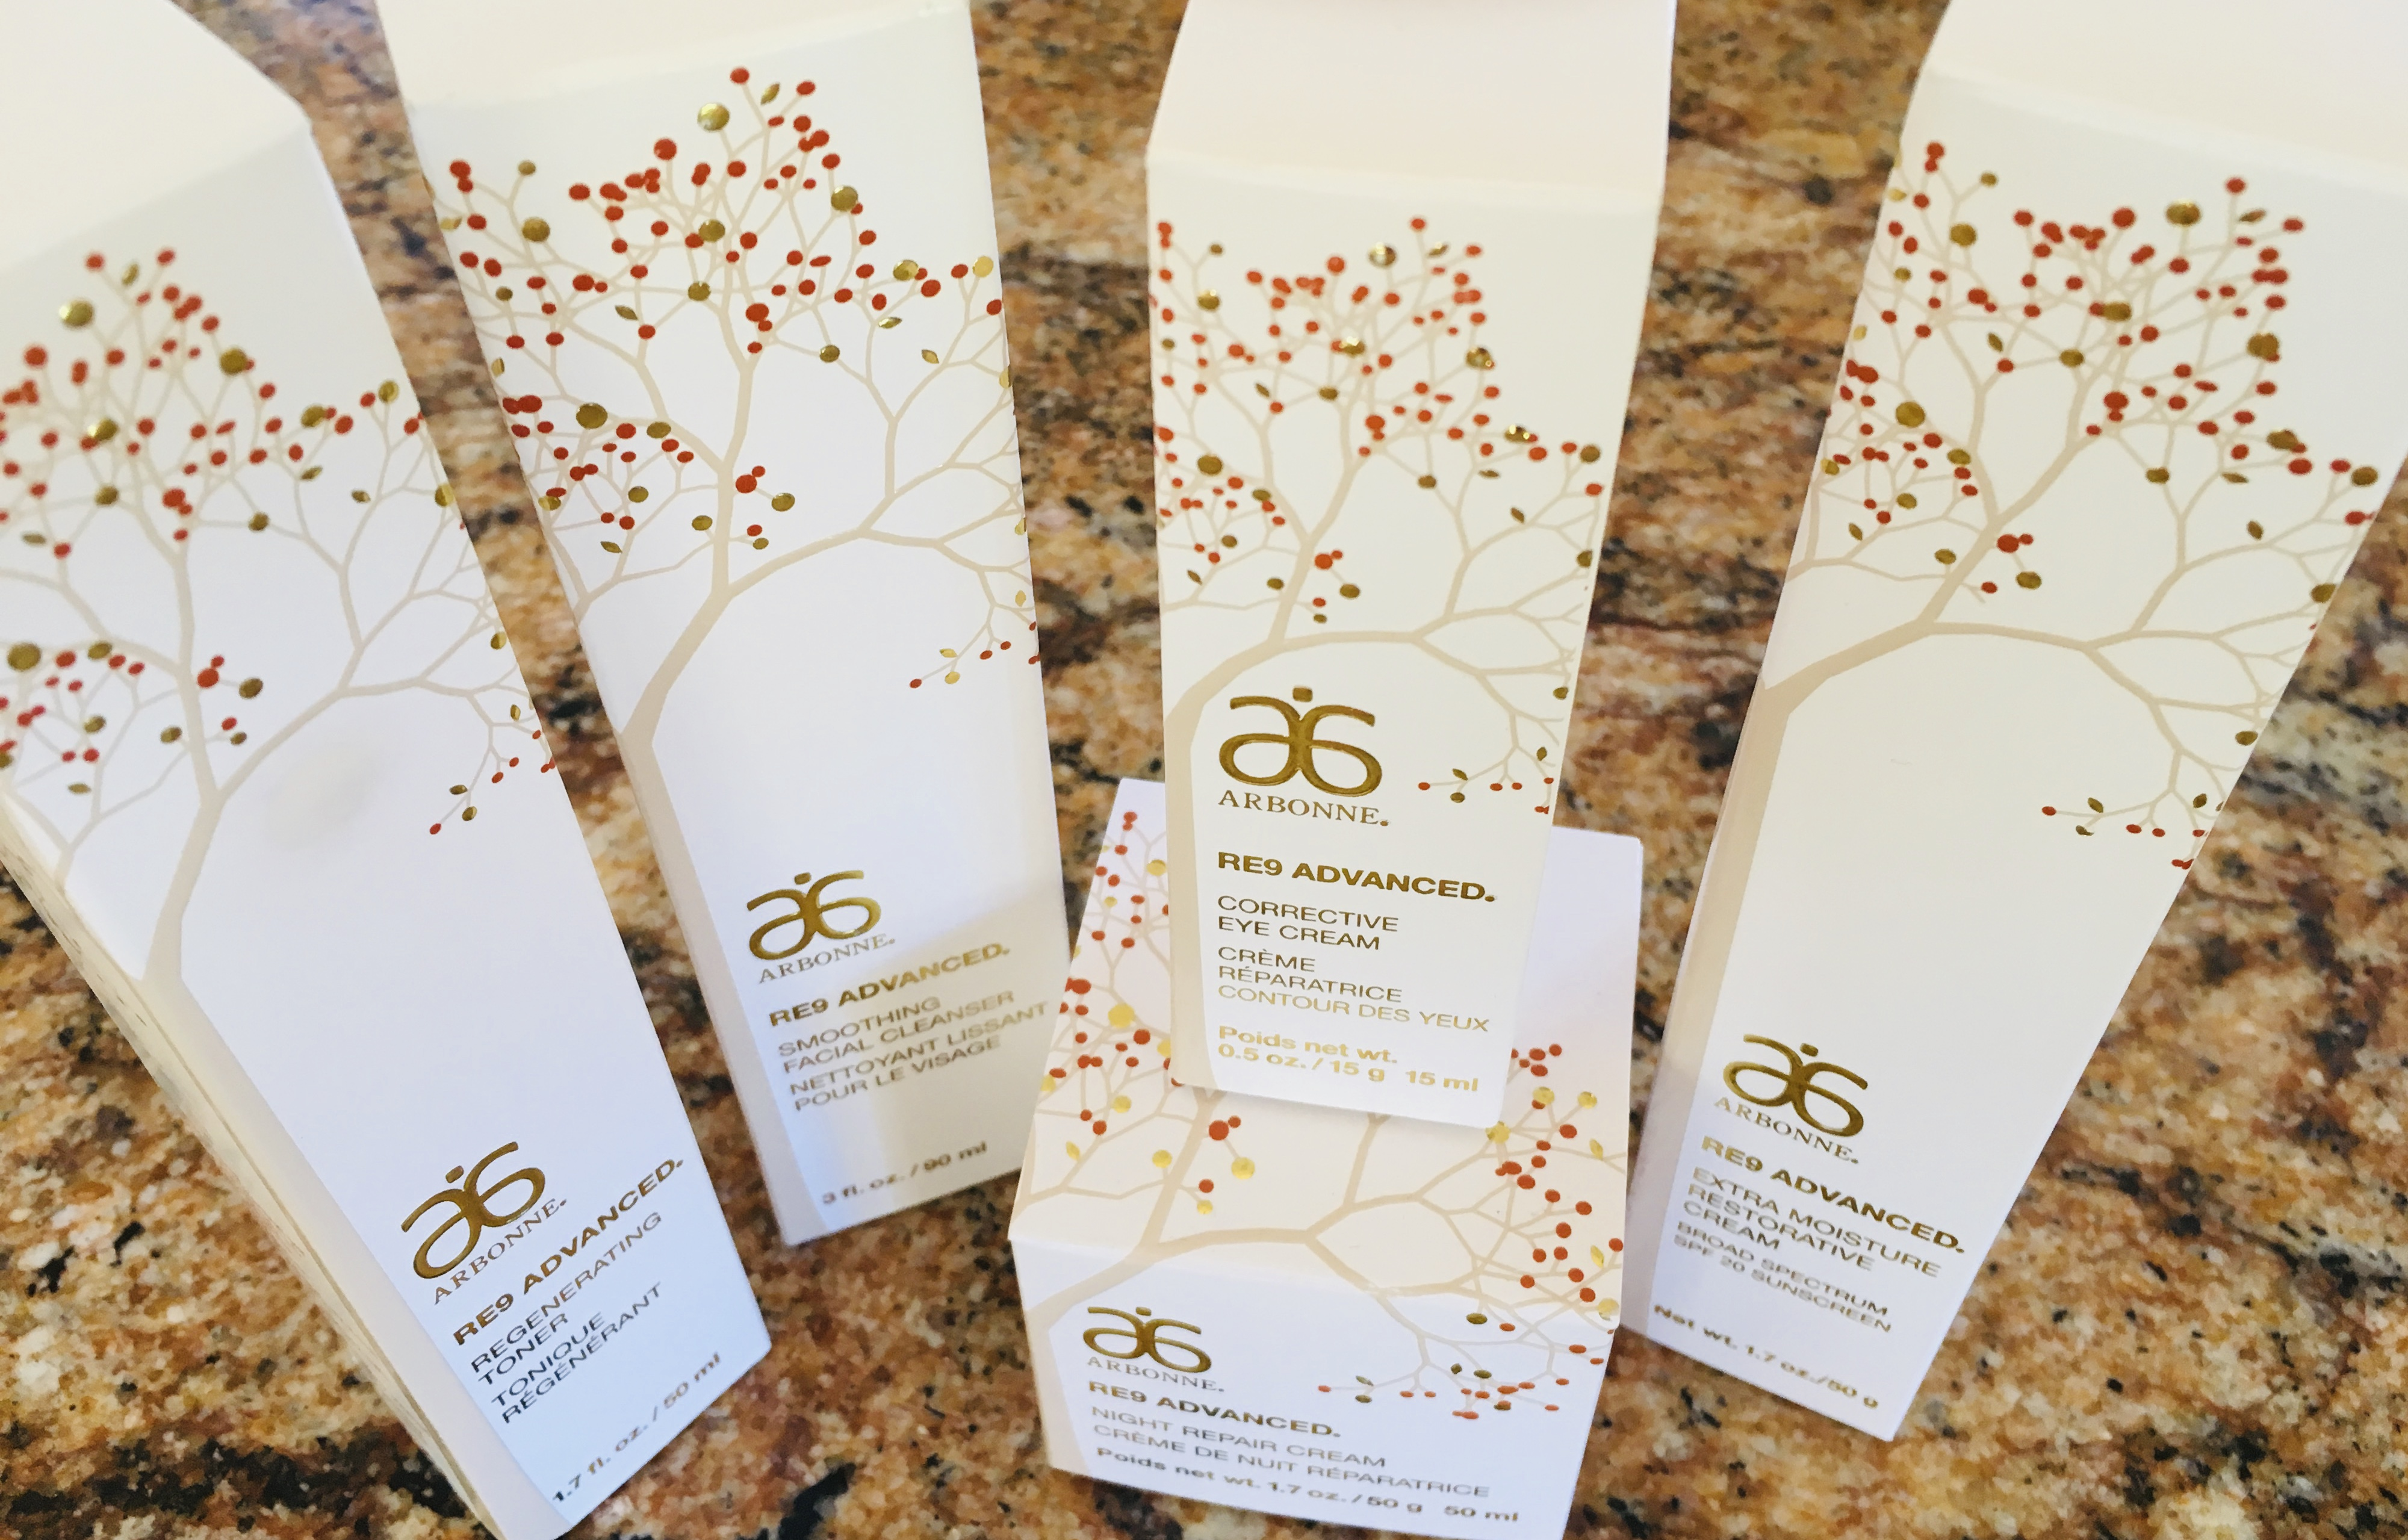 Arbonne for skincare